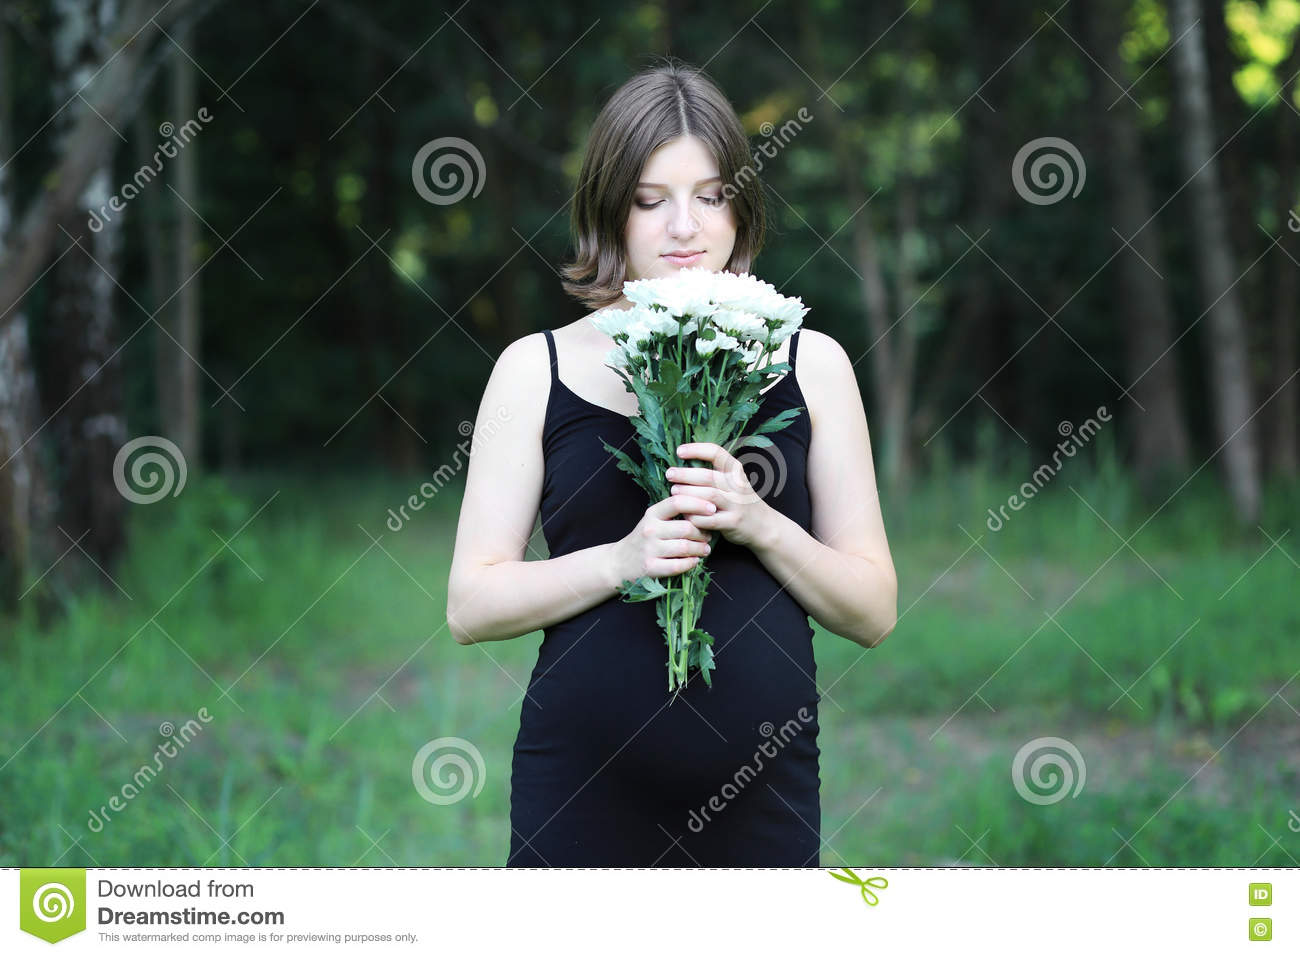 Young Pregnant Woman Is In The Black Dress With White Flowers Stock